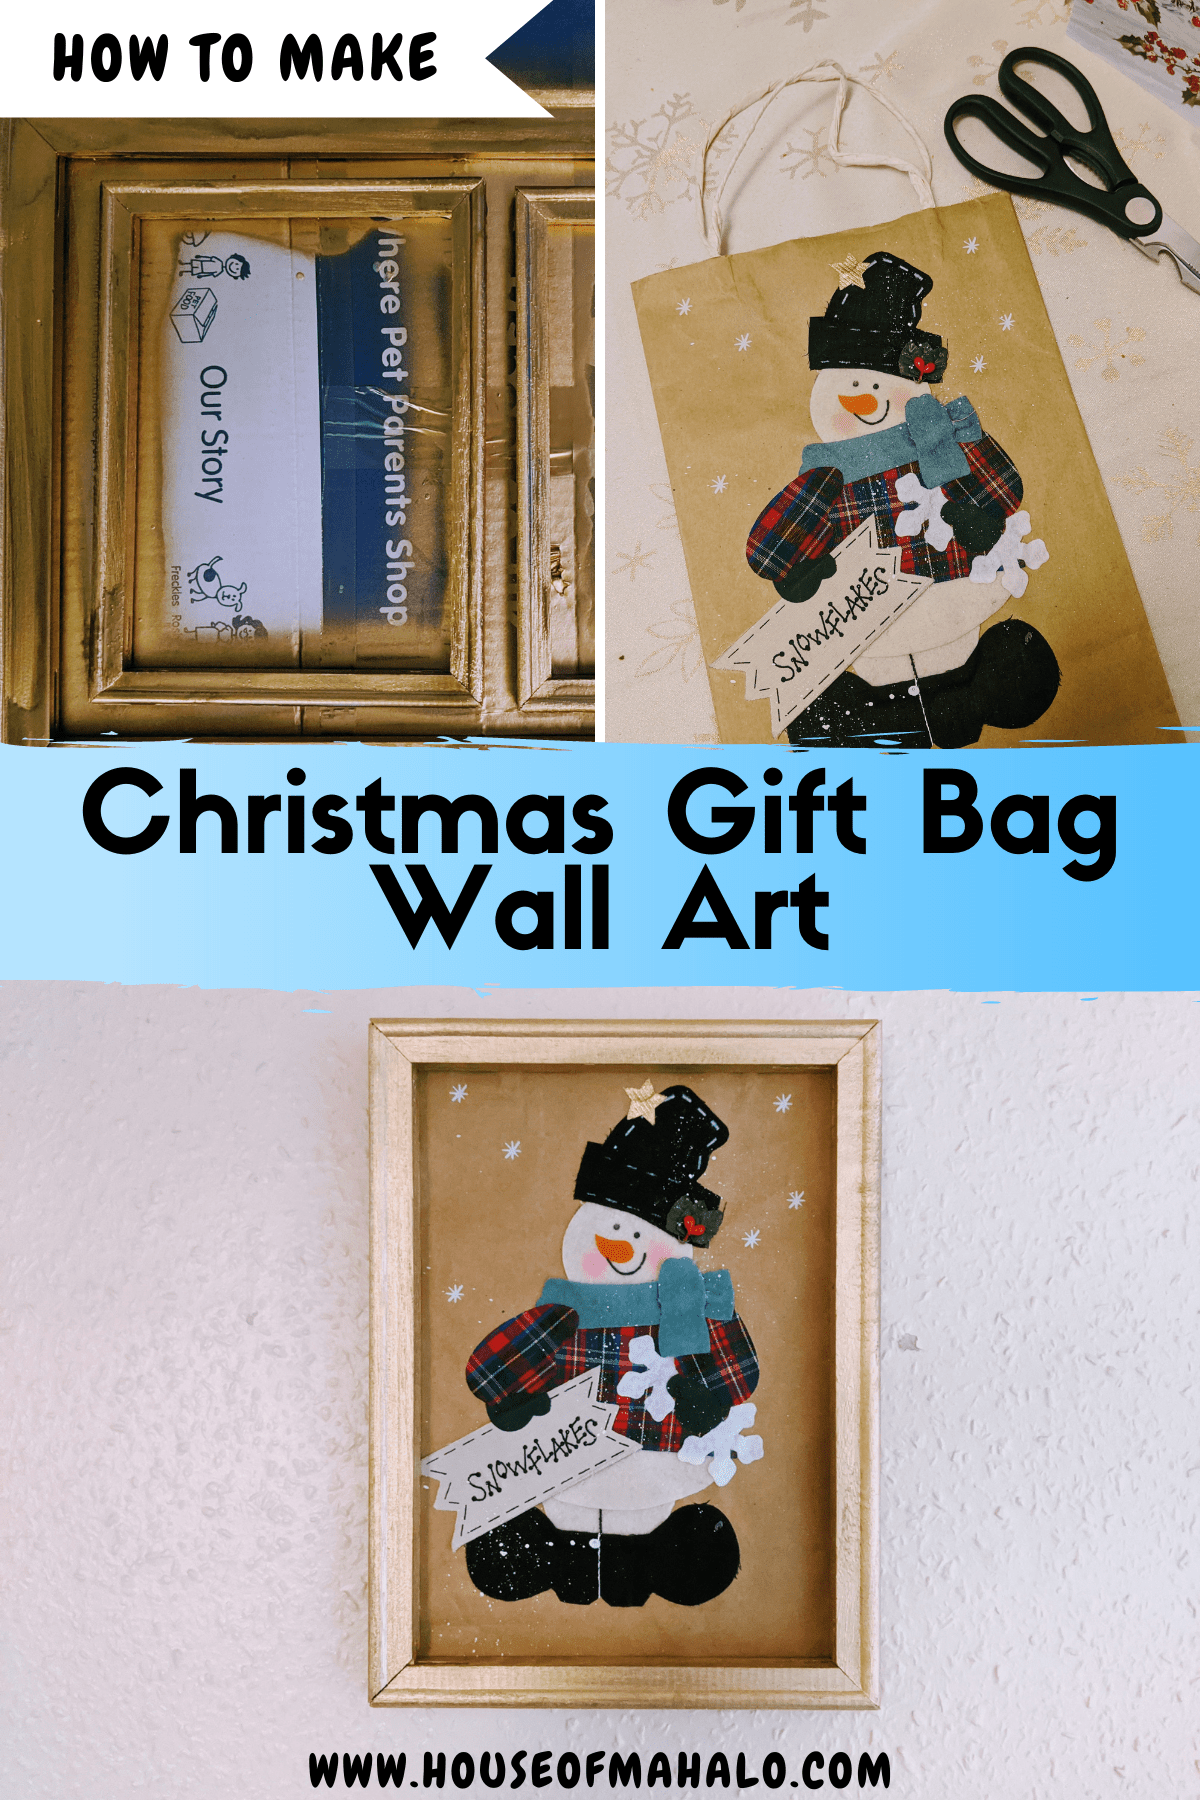 Gift Bag Wall Art | Christmas Reverse Canvas Tutorial